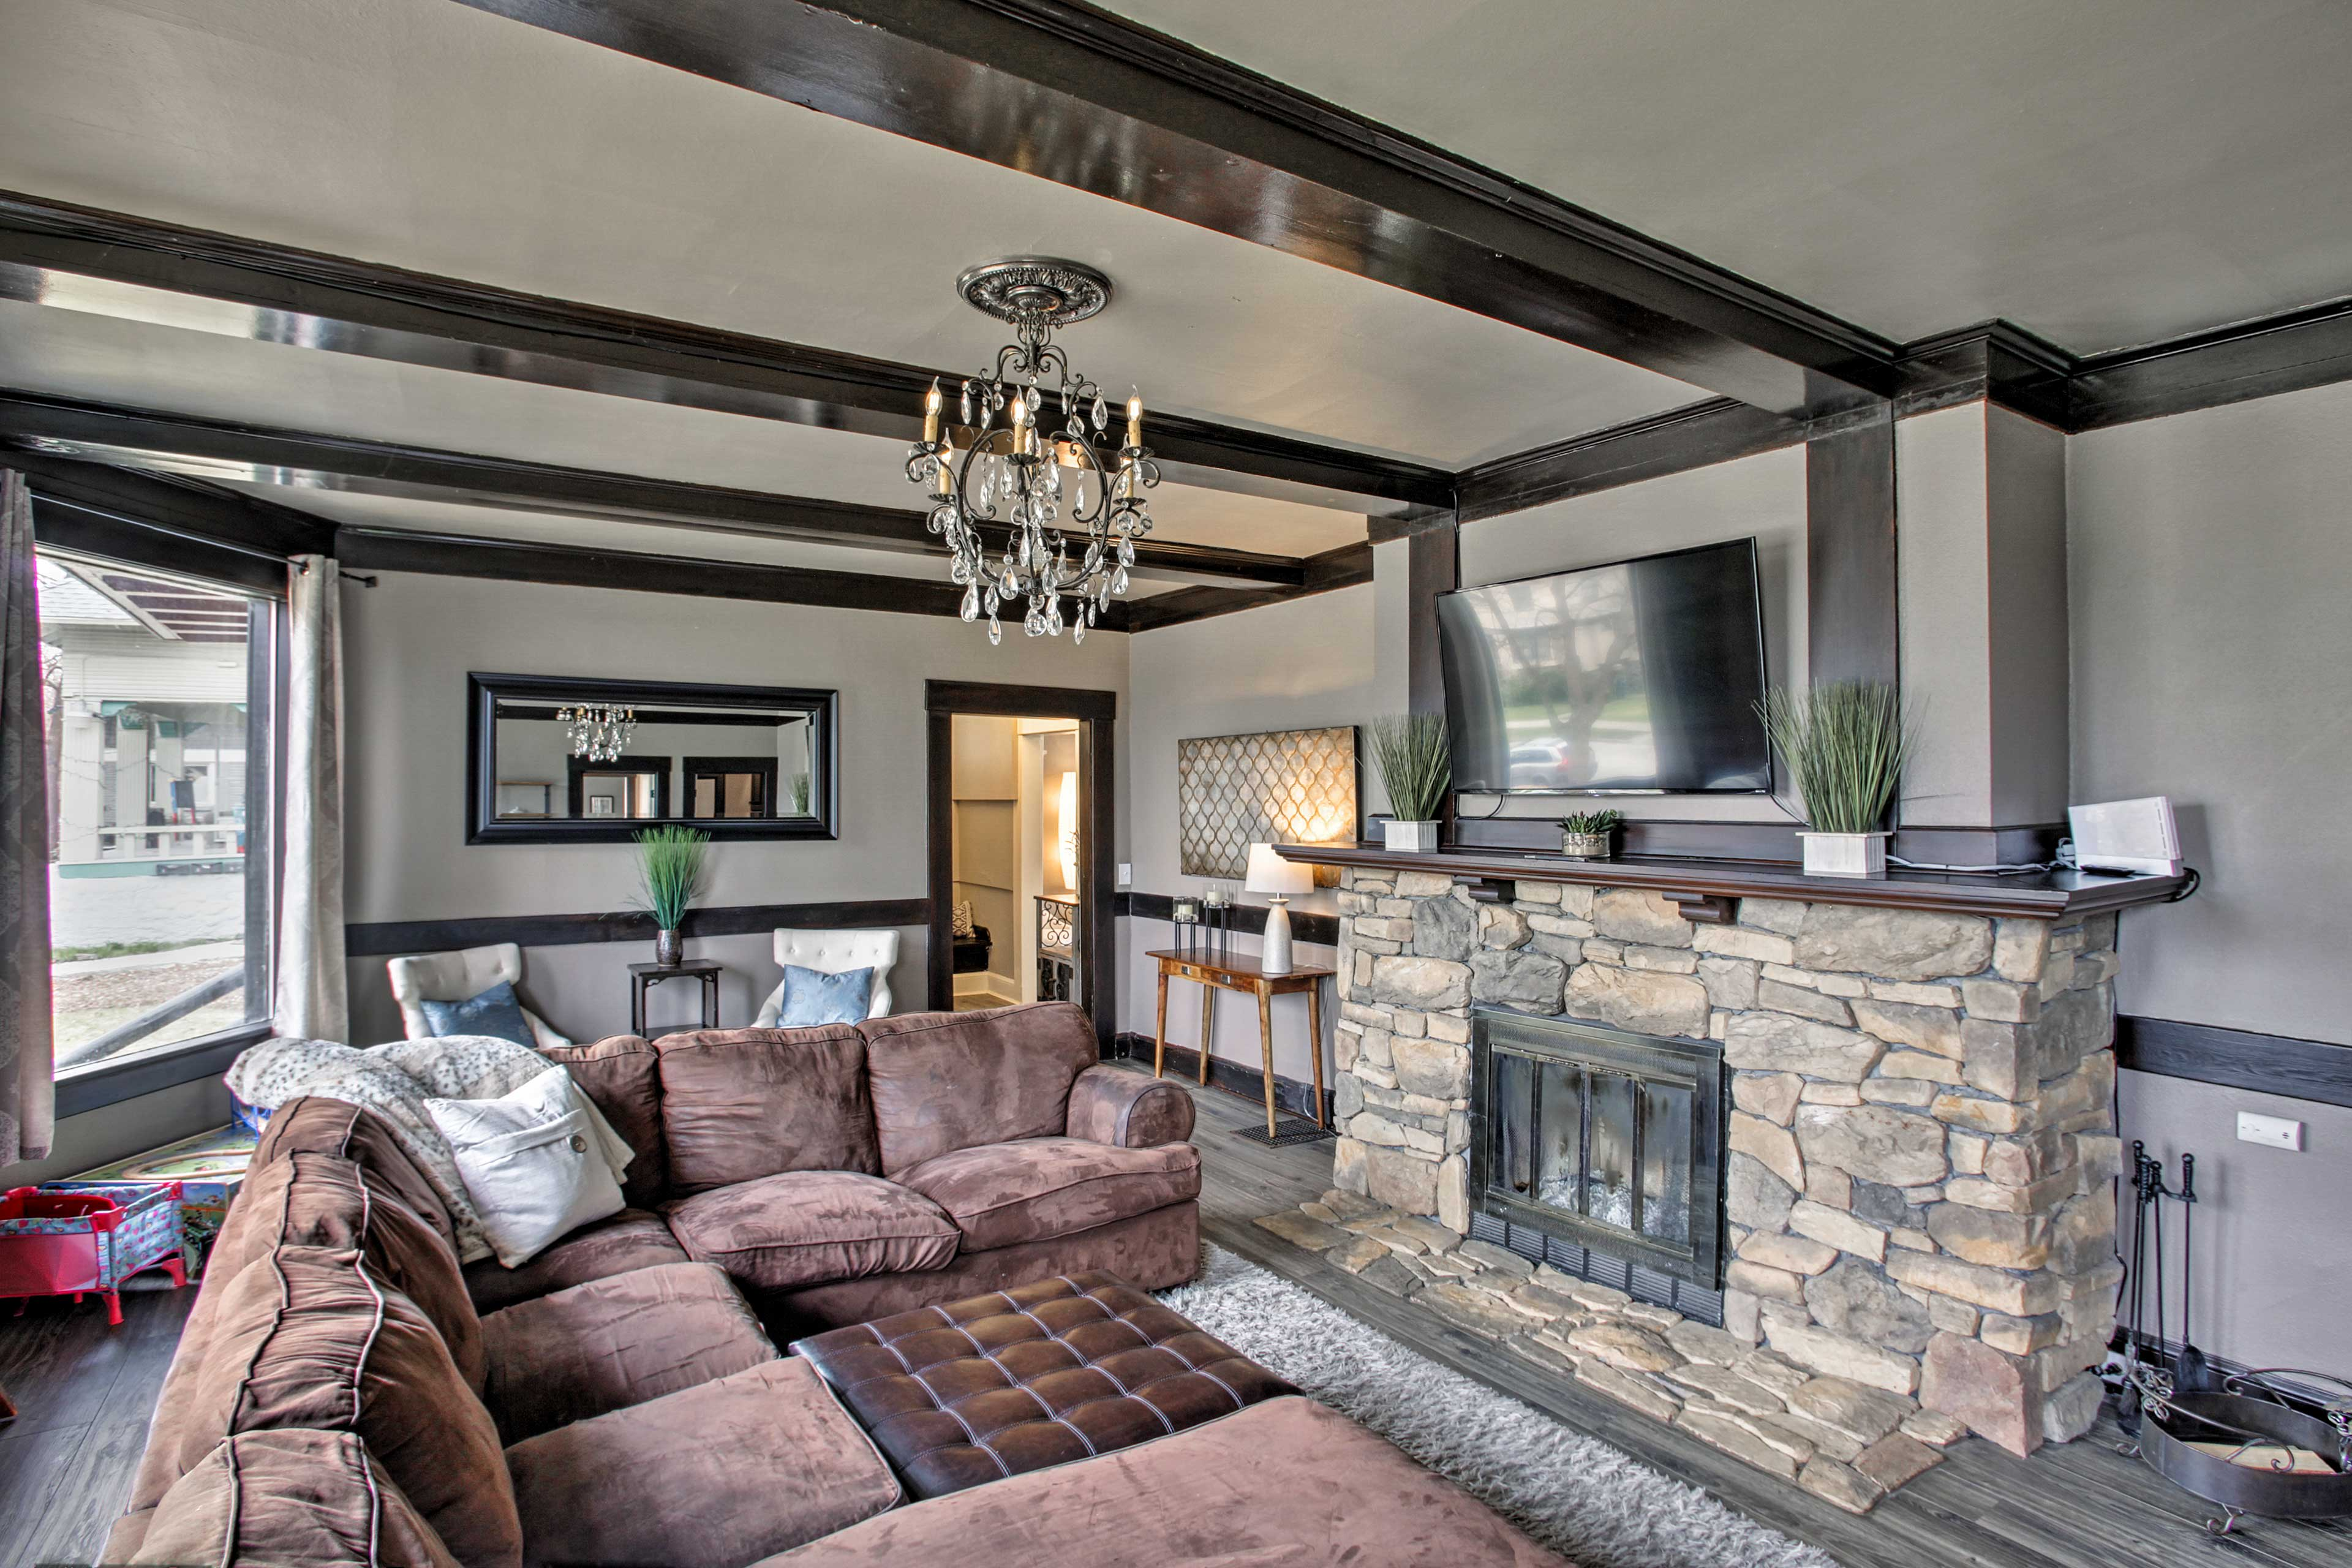 The large living area features a wood-burning fireplace and flat-screen TV.